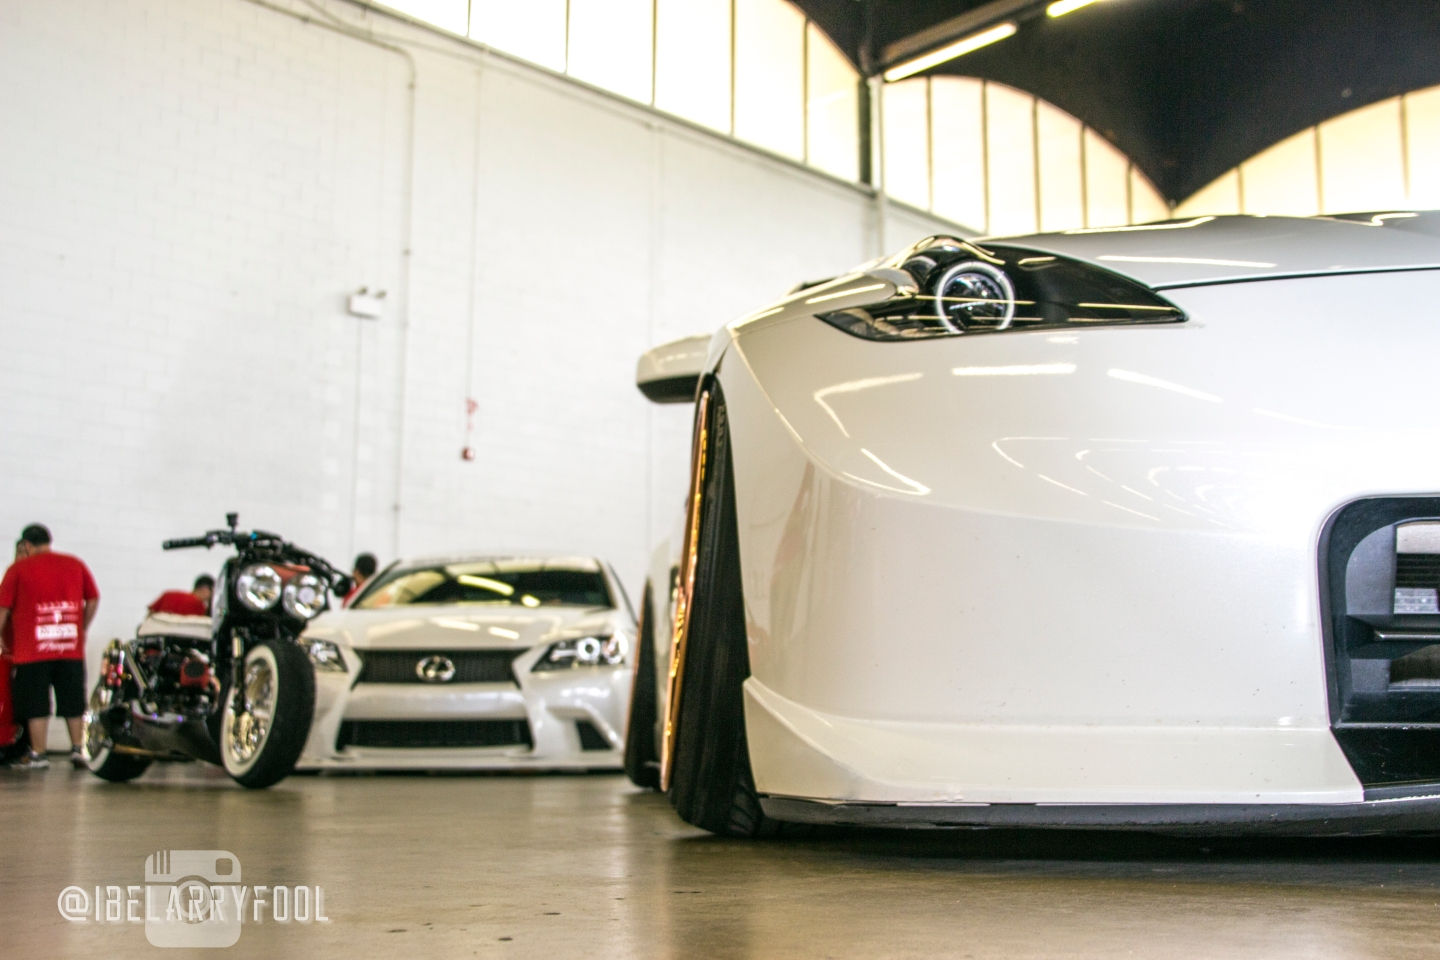 HOT IMPORT NIGHTS – DALLAS || Larry Nichols Photography